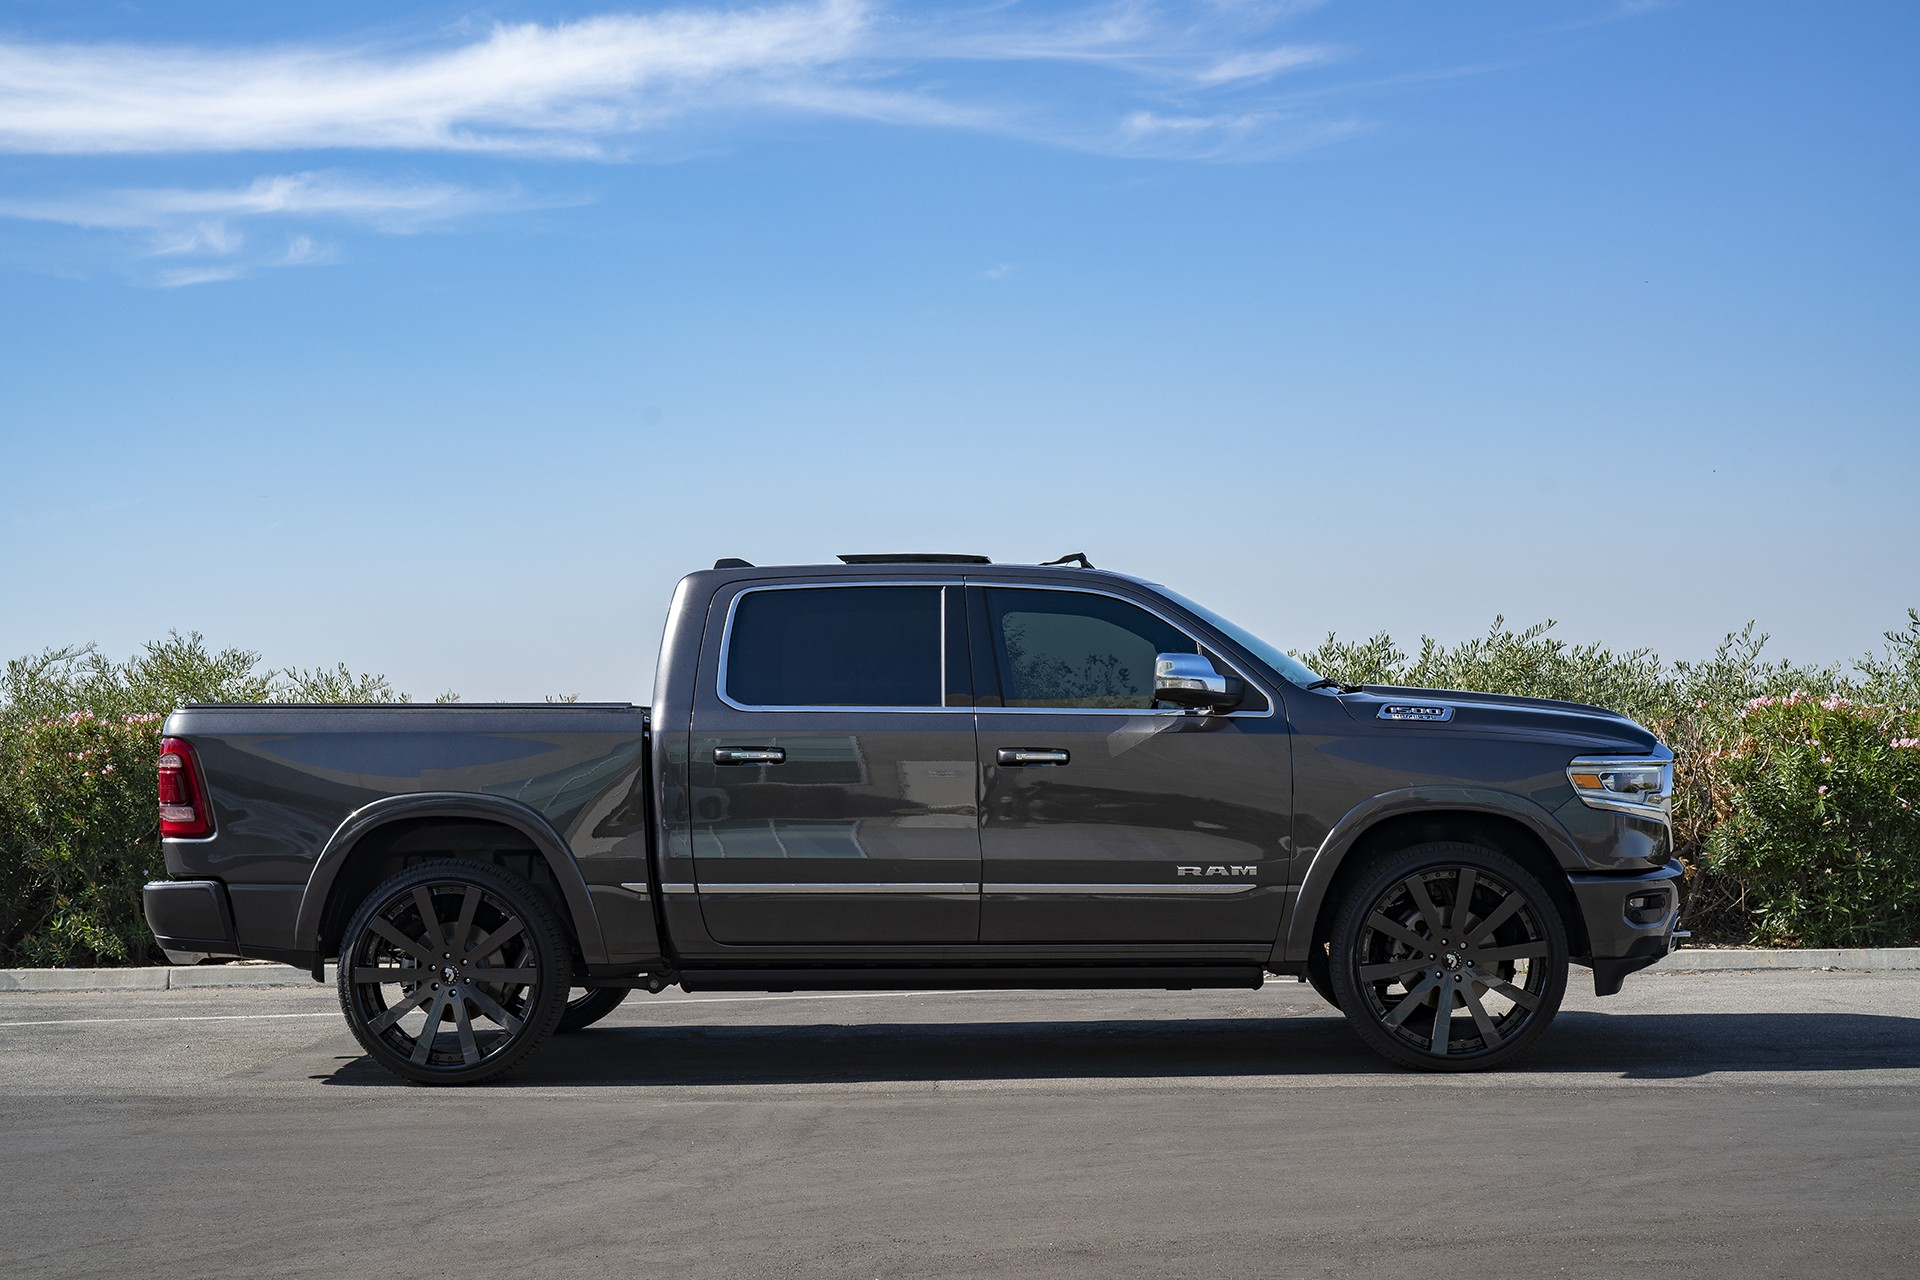 Hybrid Pickup Trucks >> Shaquille O'Neal Tunes His 2019 Ram 1500 With Forgiato Wheels - autoevolution